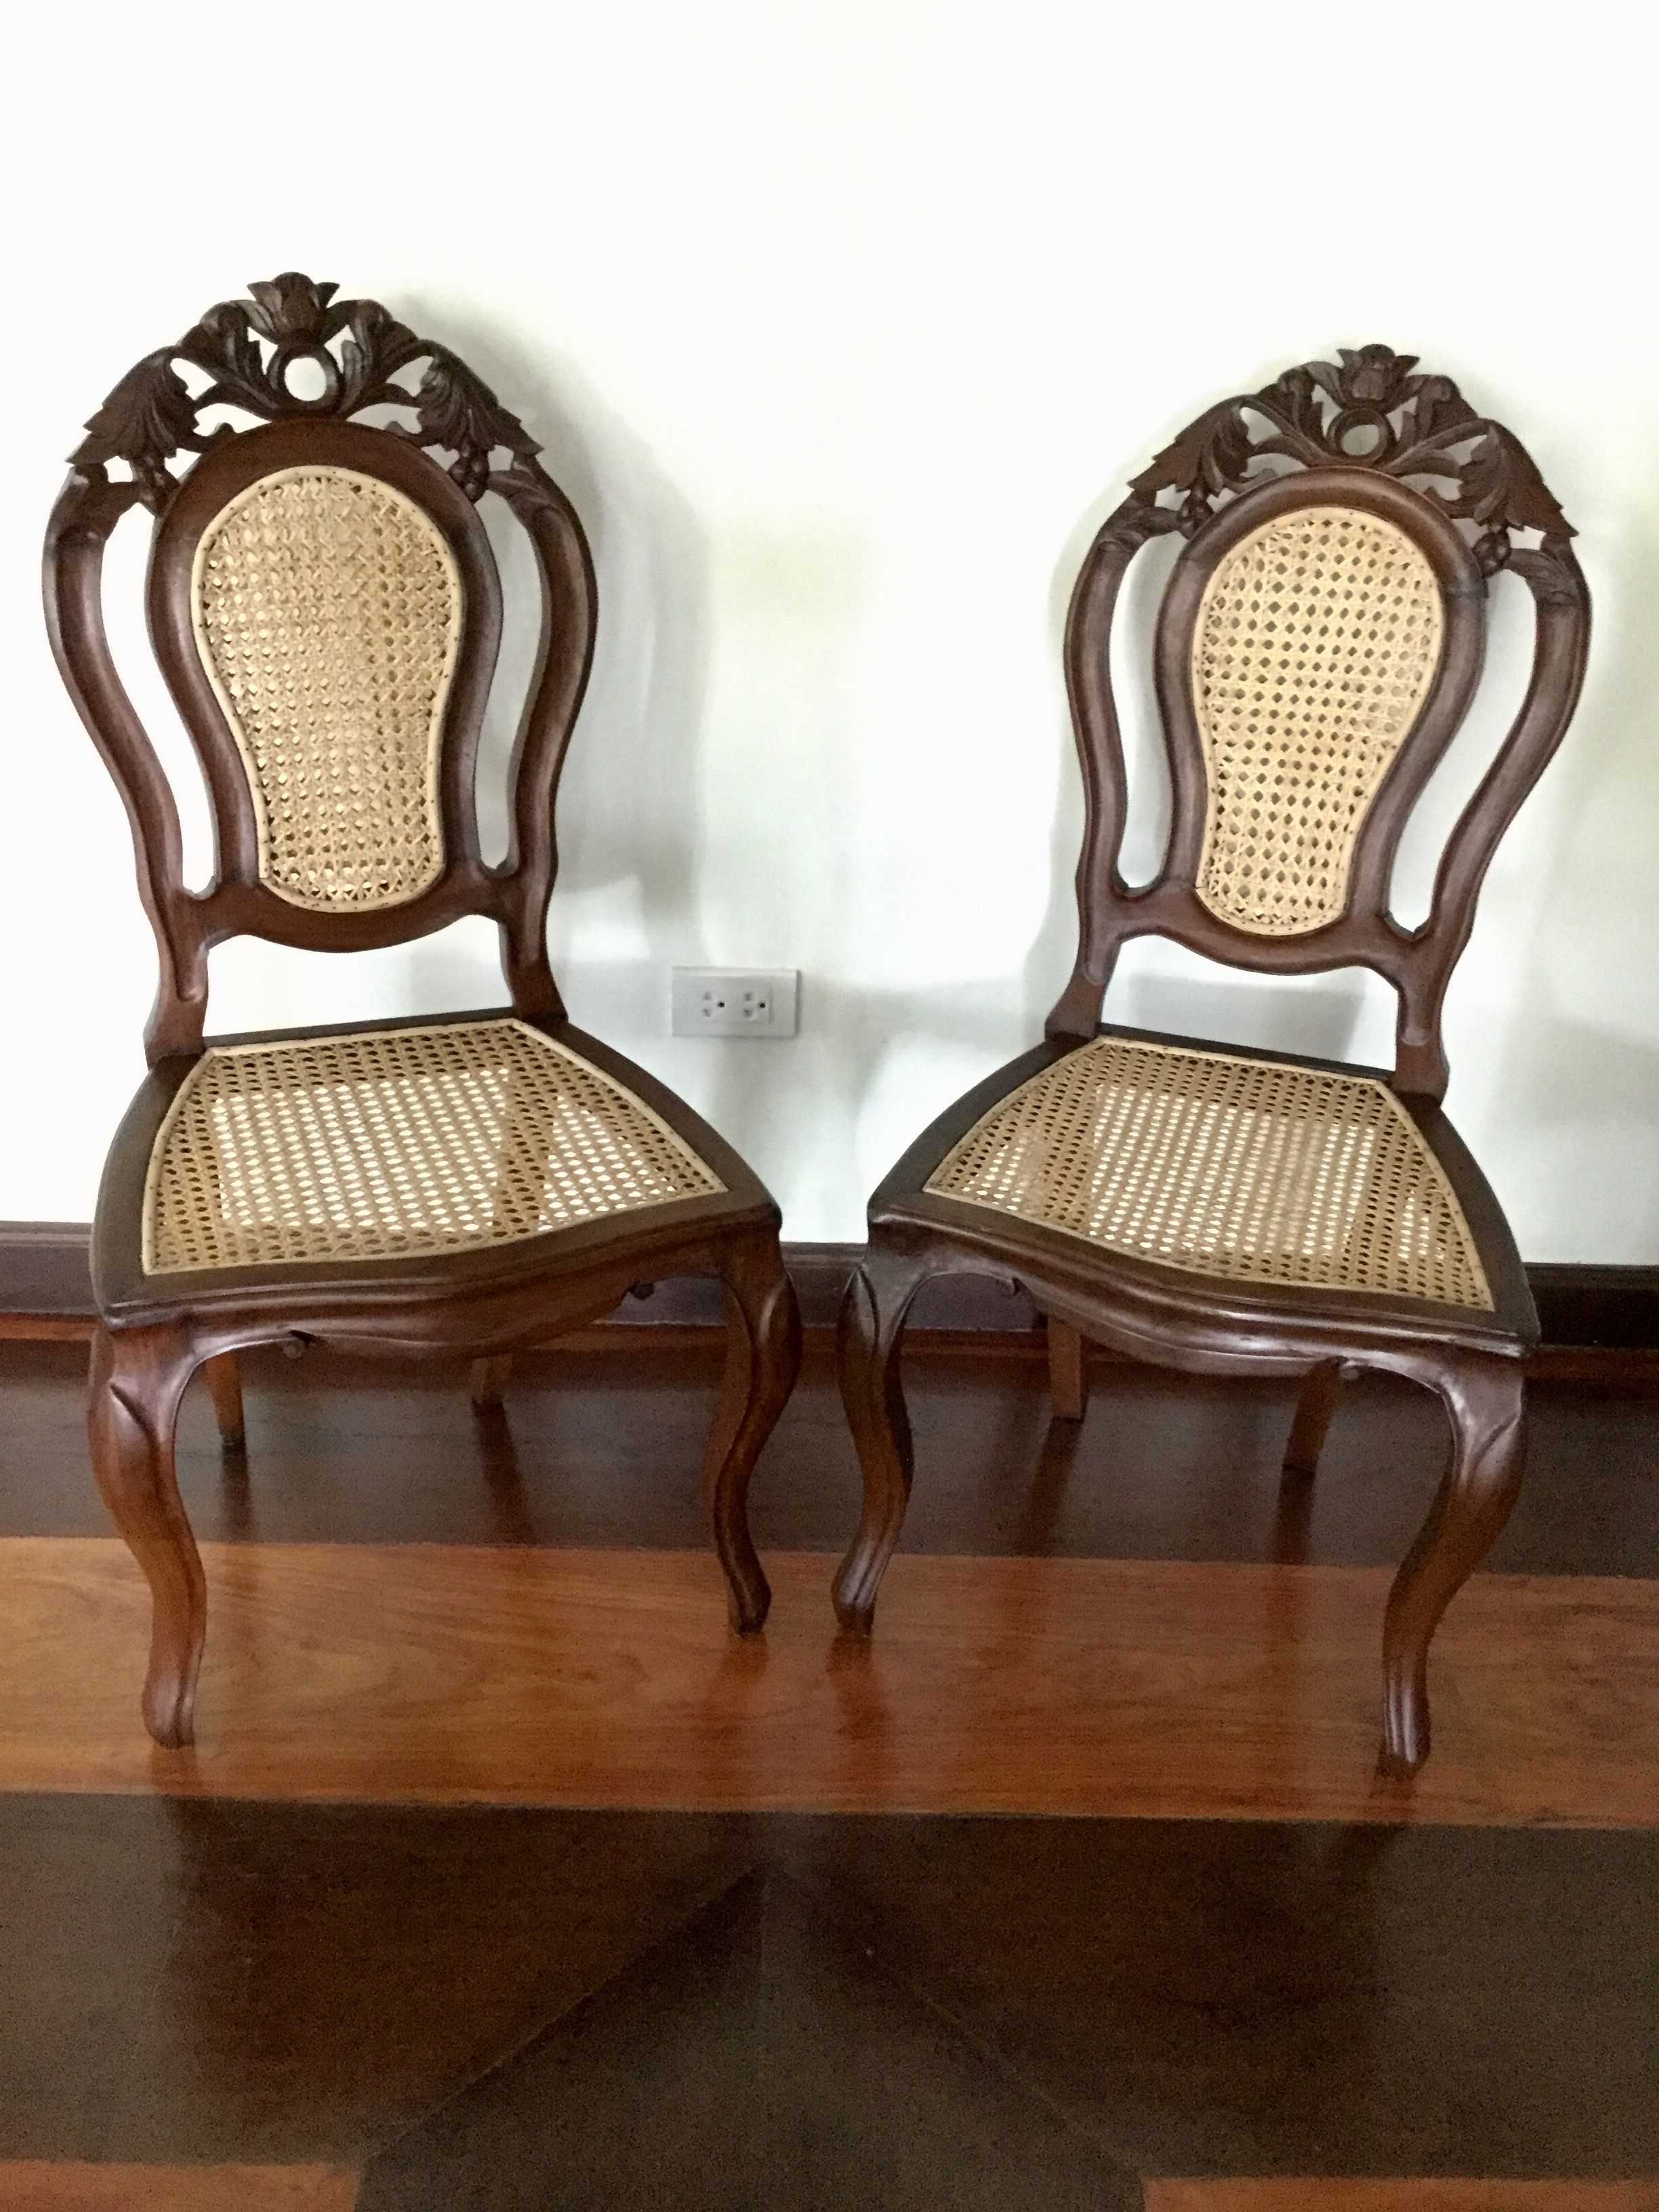 Antique Narra Sala Set Mariposa Dining Chairs 2 Of 5 From The Gutierrez Family